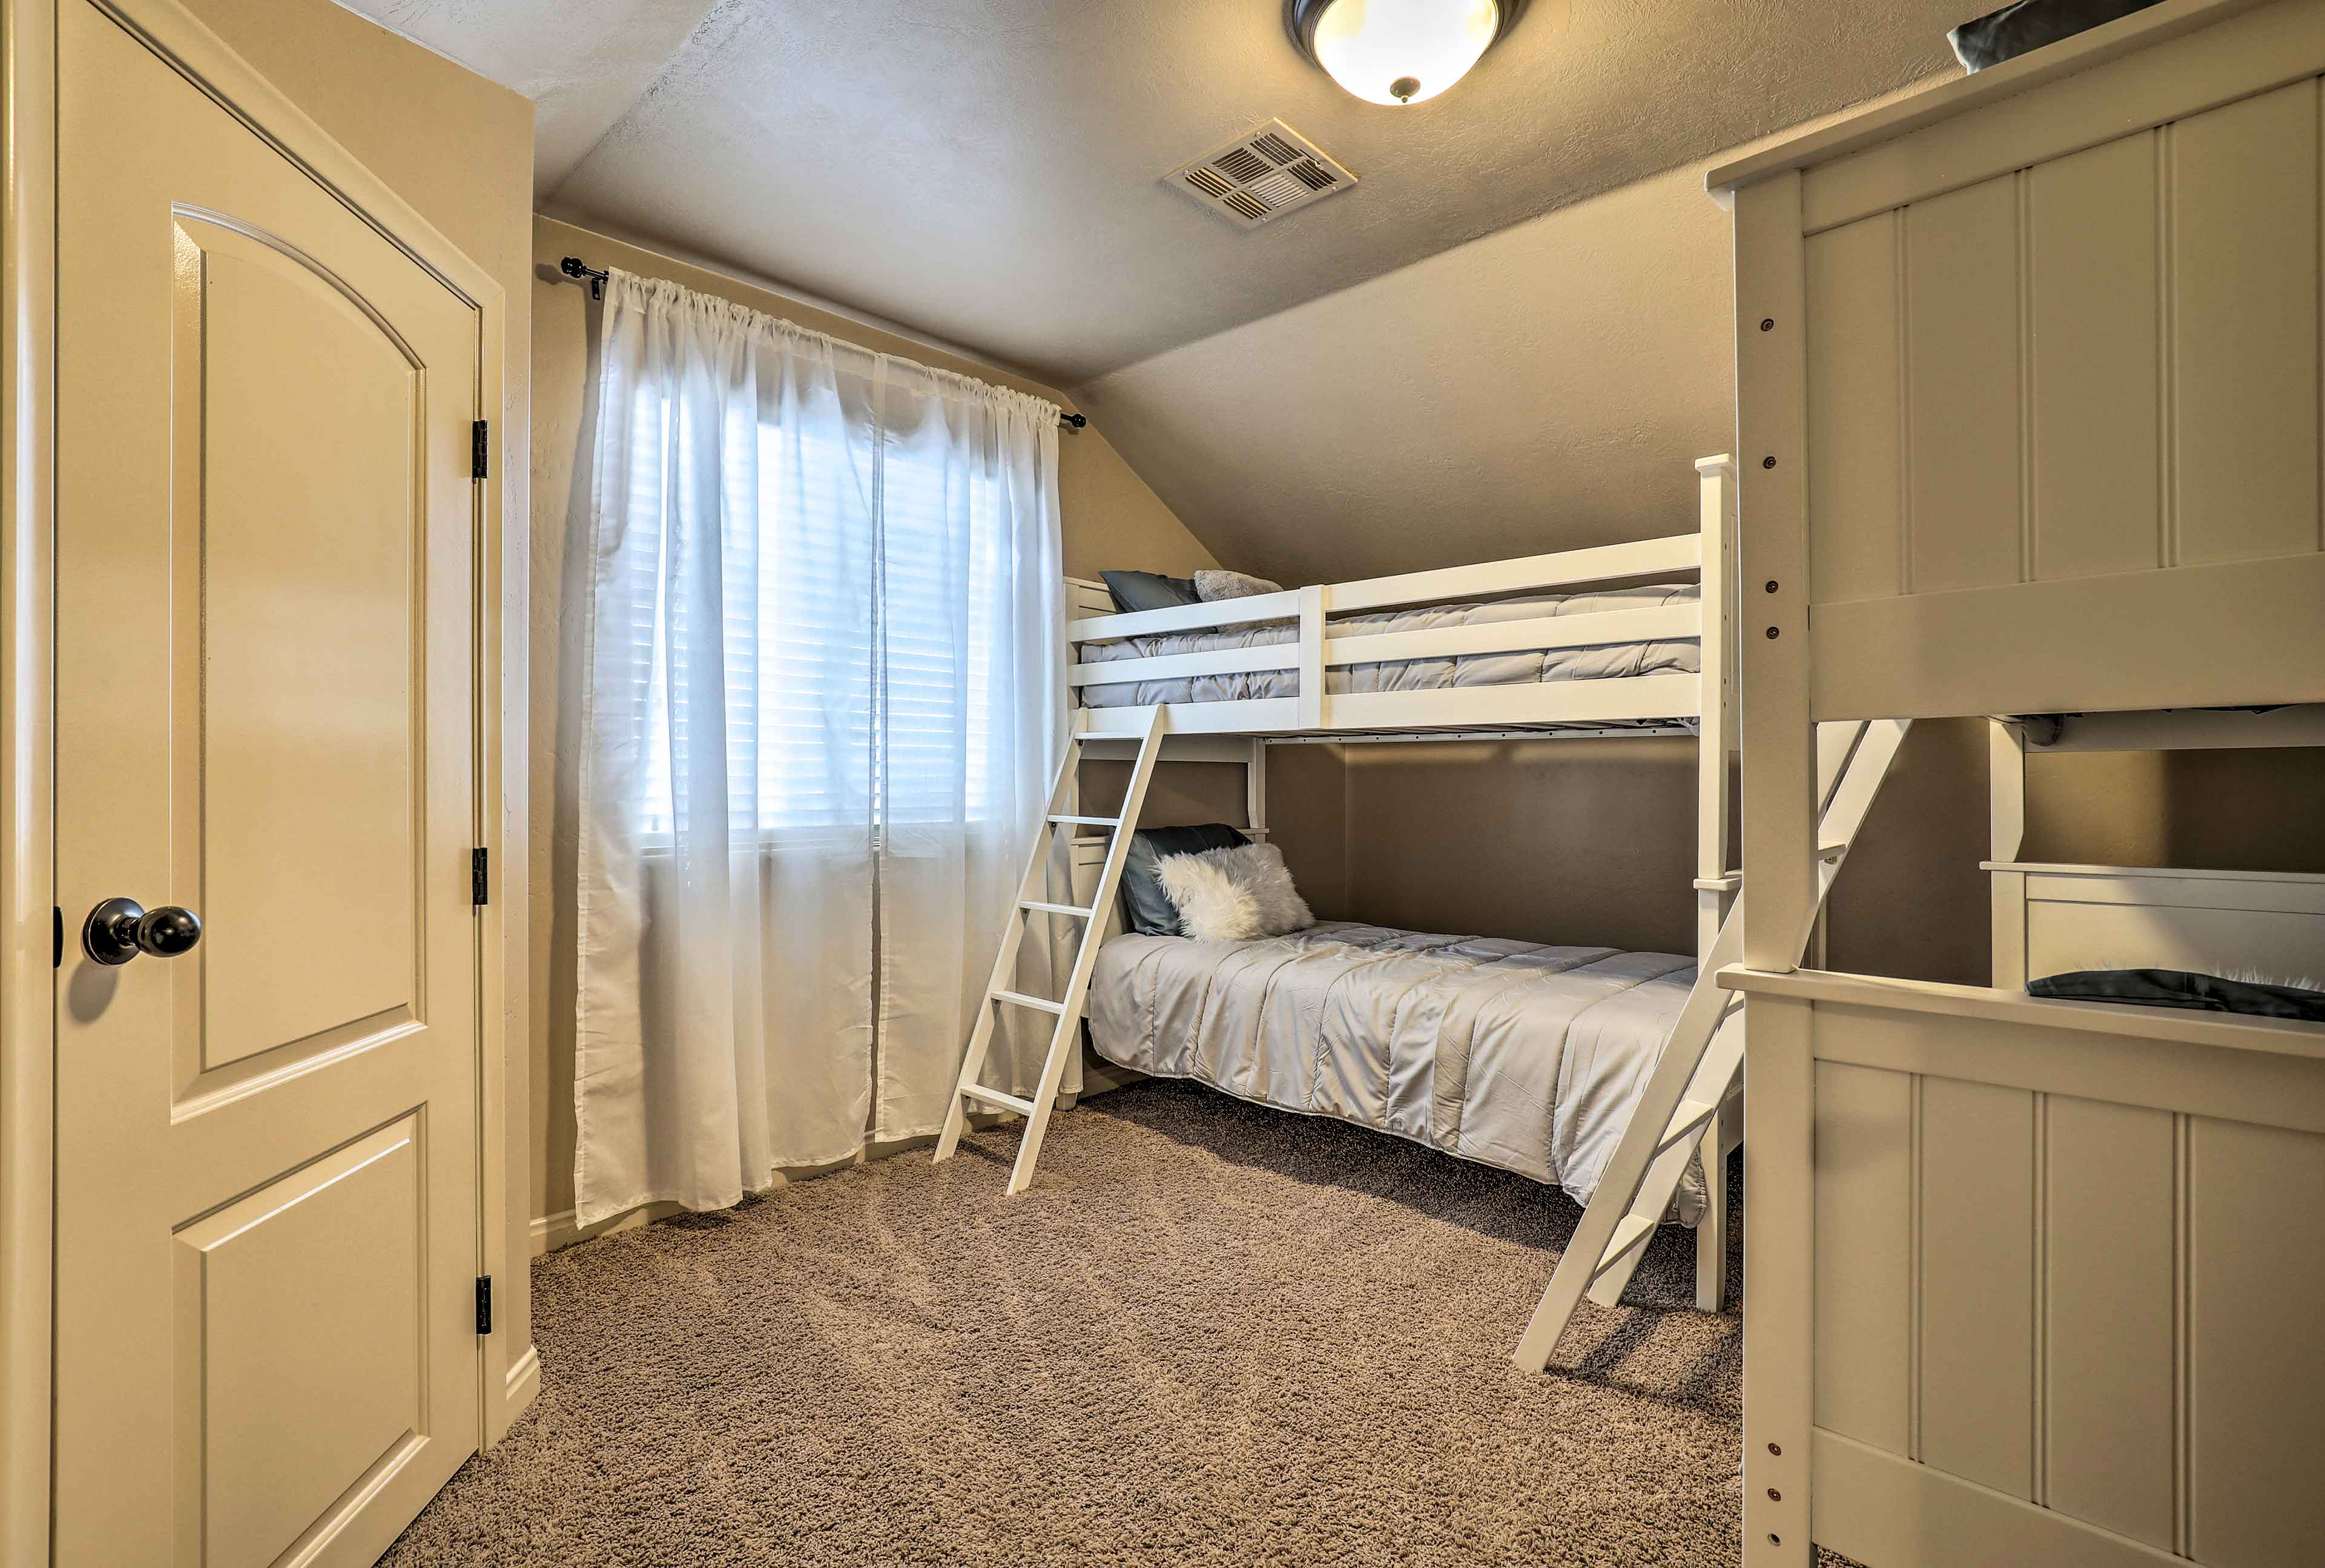 The second bunk room includes 2 twin-over-twin bunk beds.